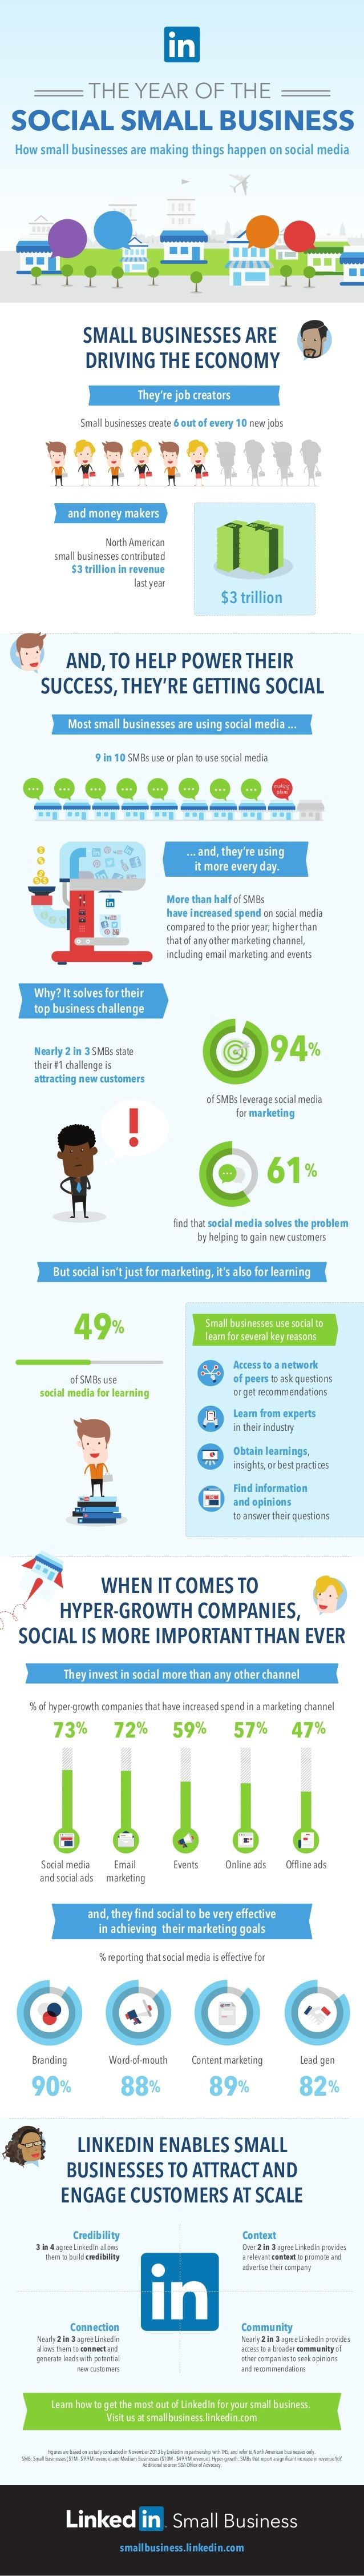 #Social Media - The Year of the Social #SMB [Infographic]